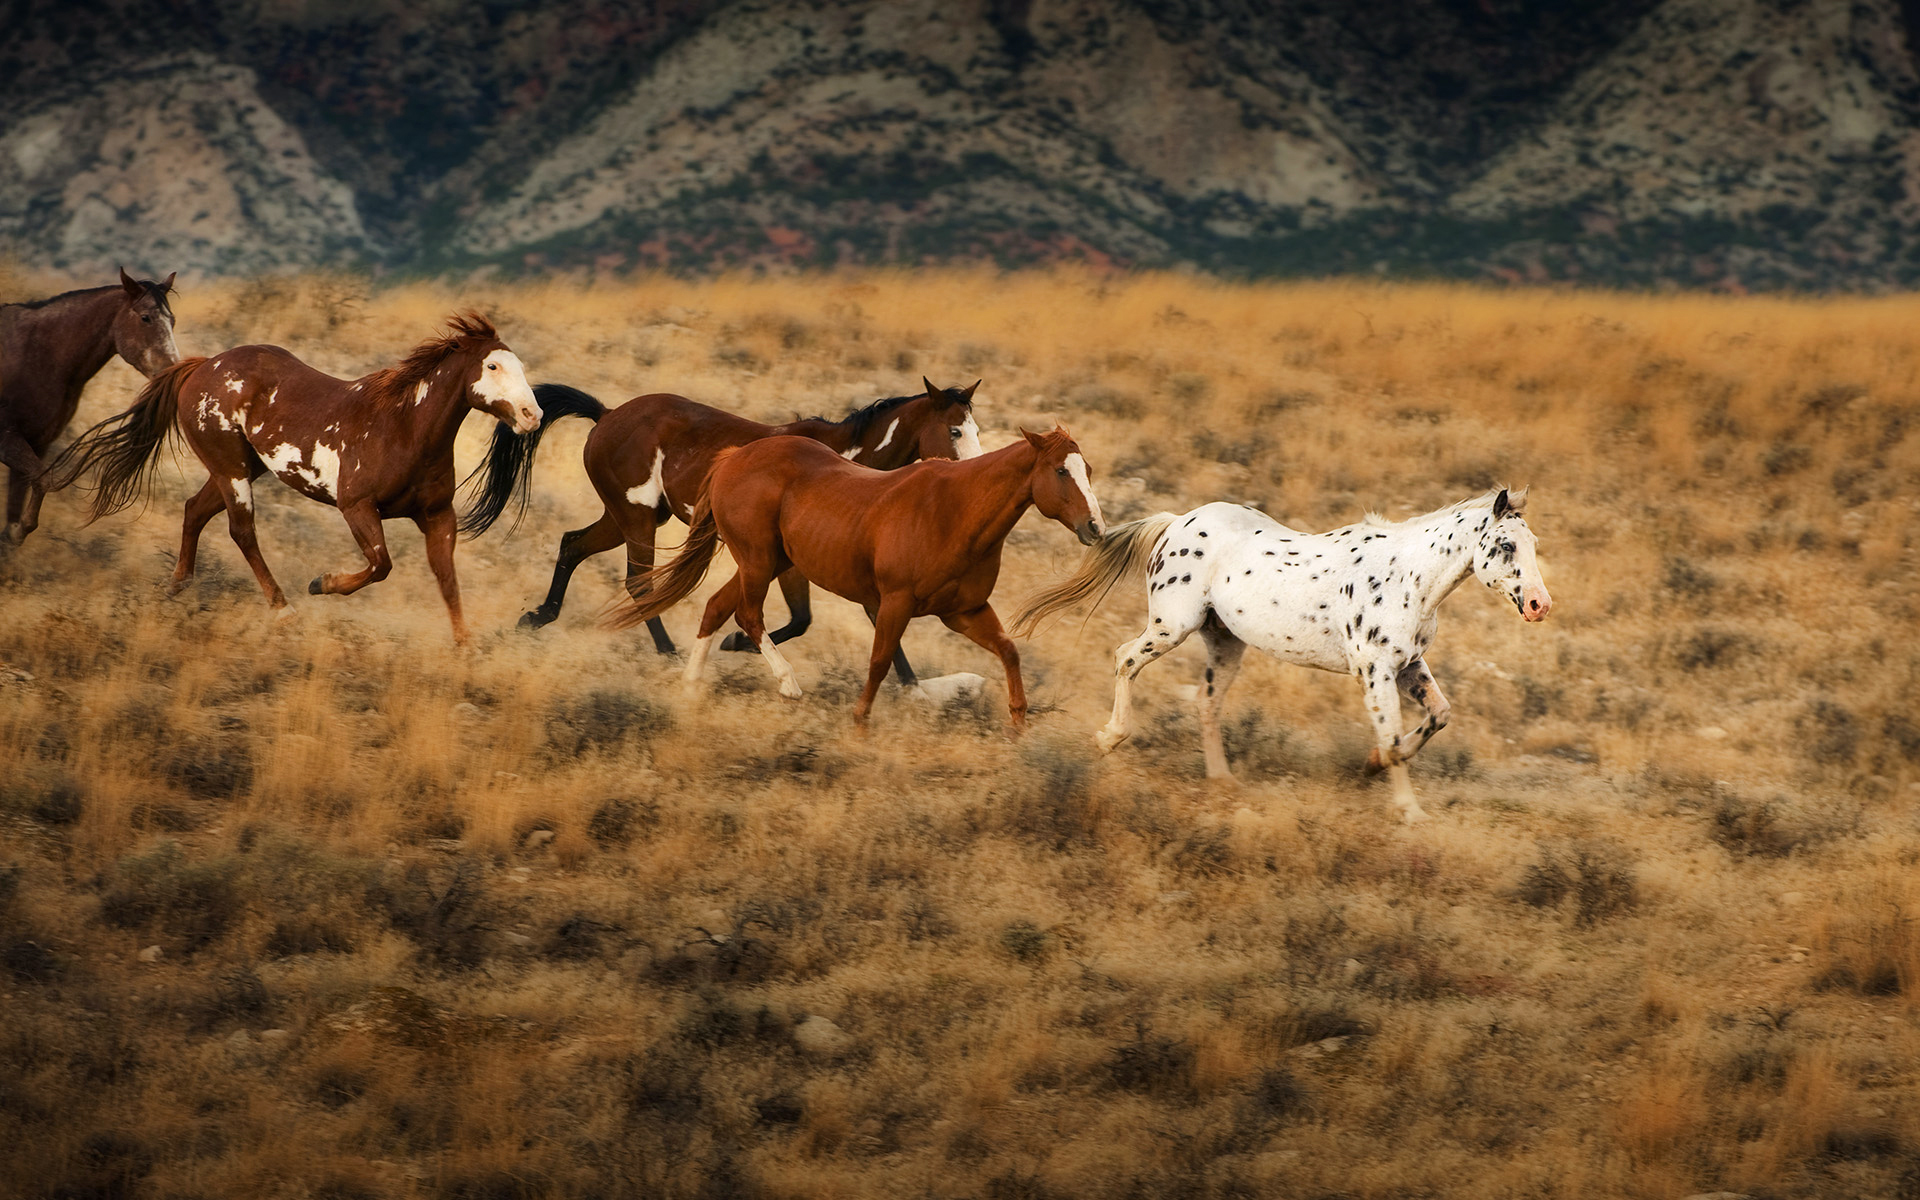 blondeprincess Pinkmare and Jessowey images Wild horses in Wyoming HD wallpaper and background photos